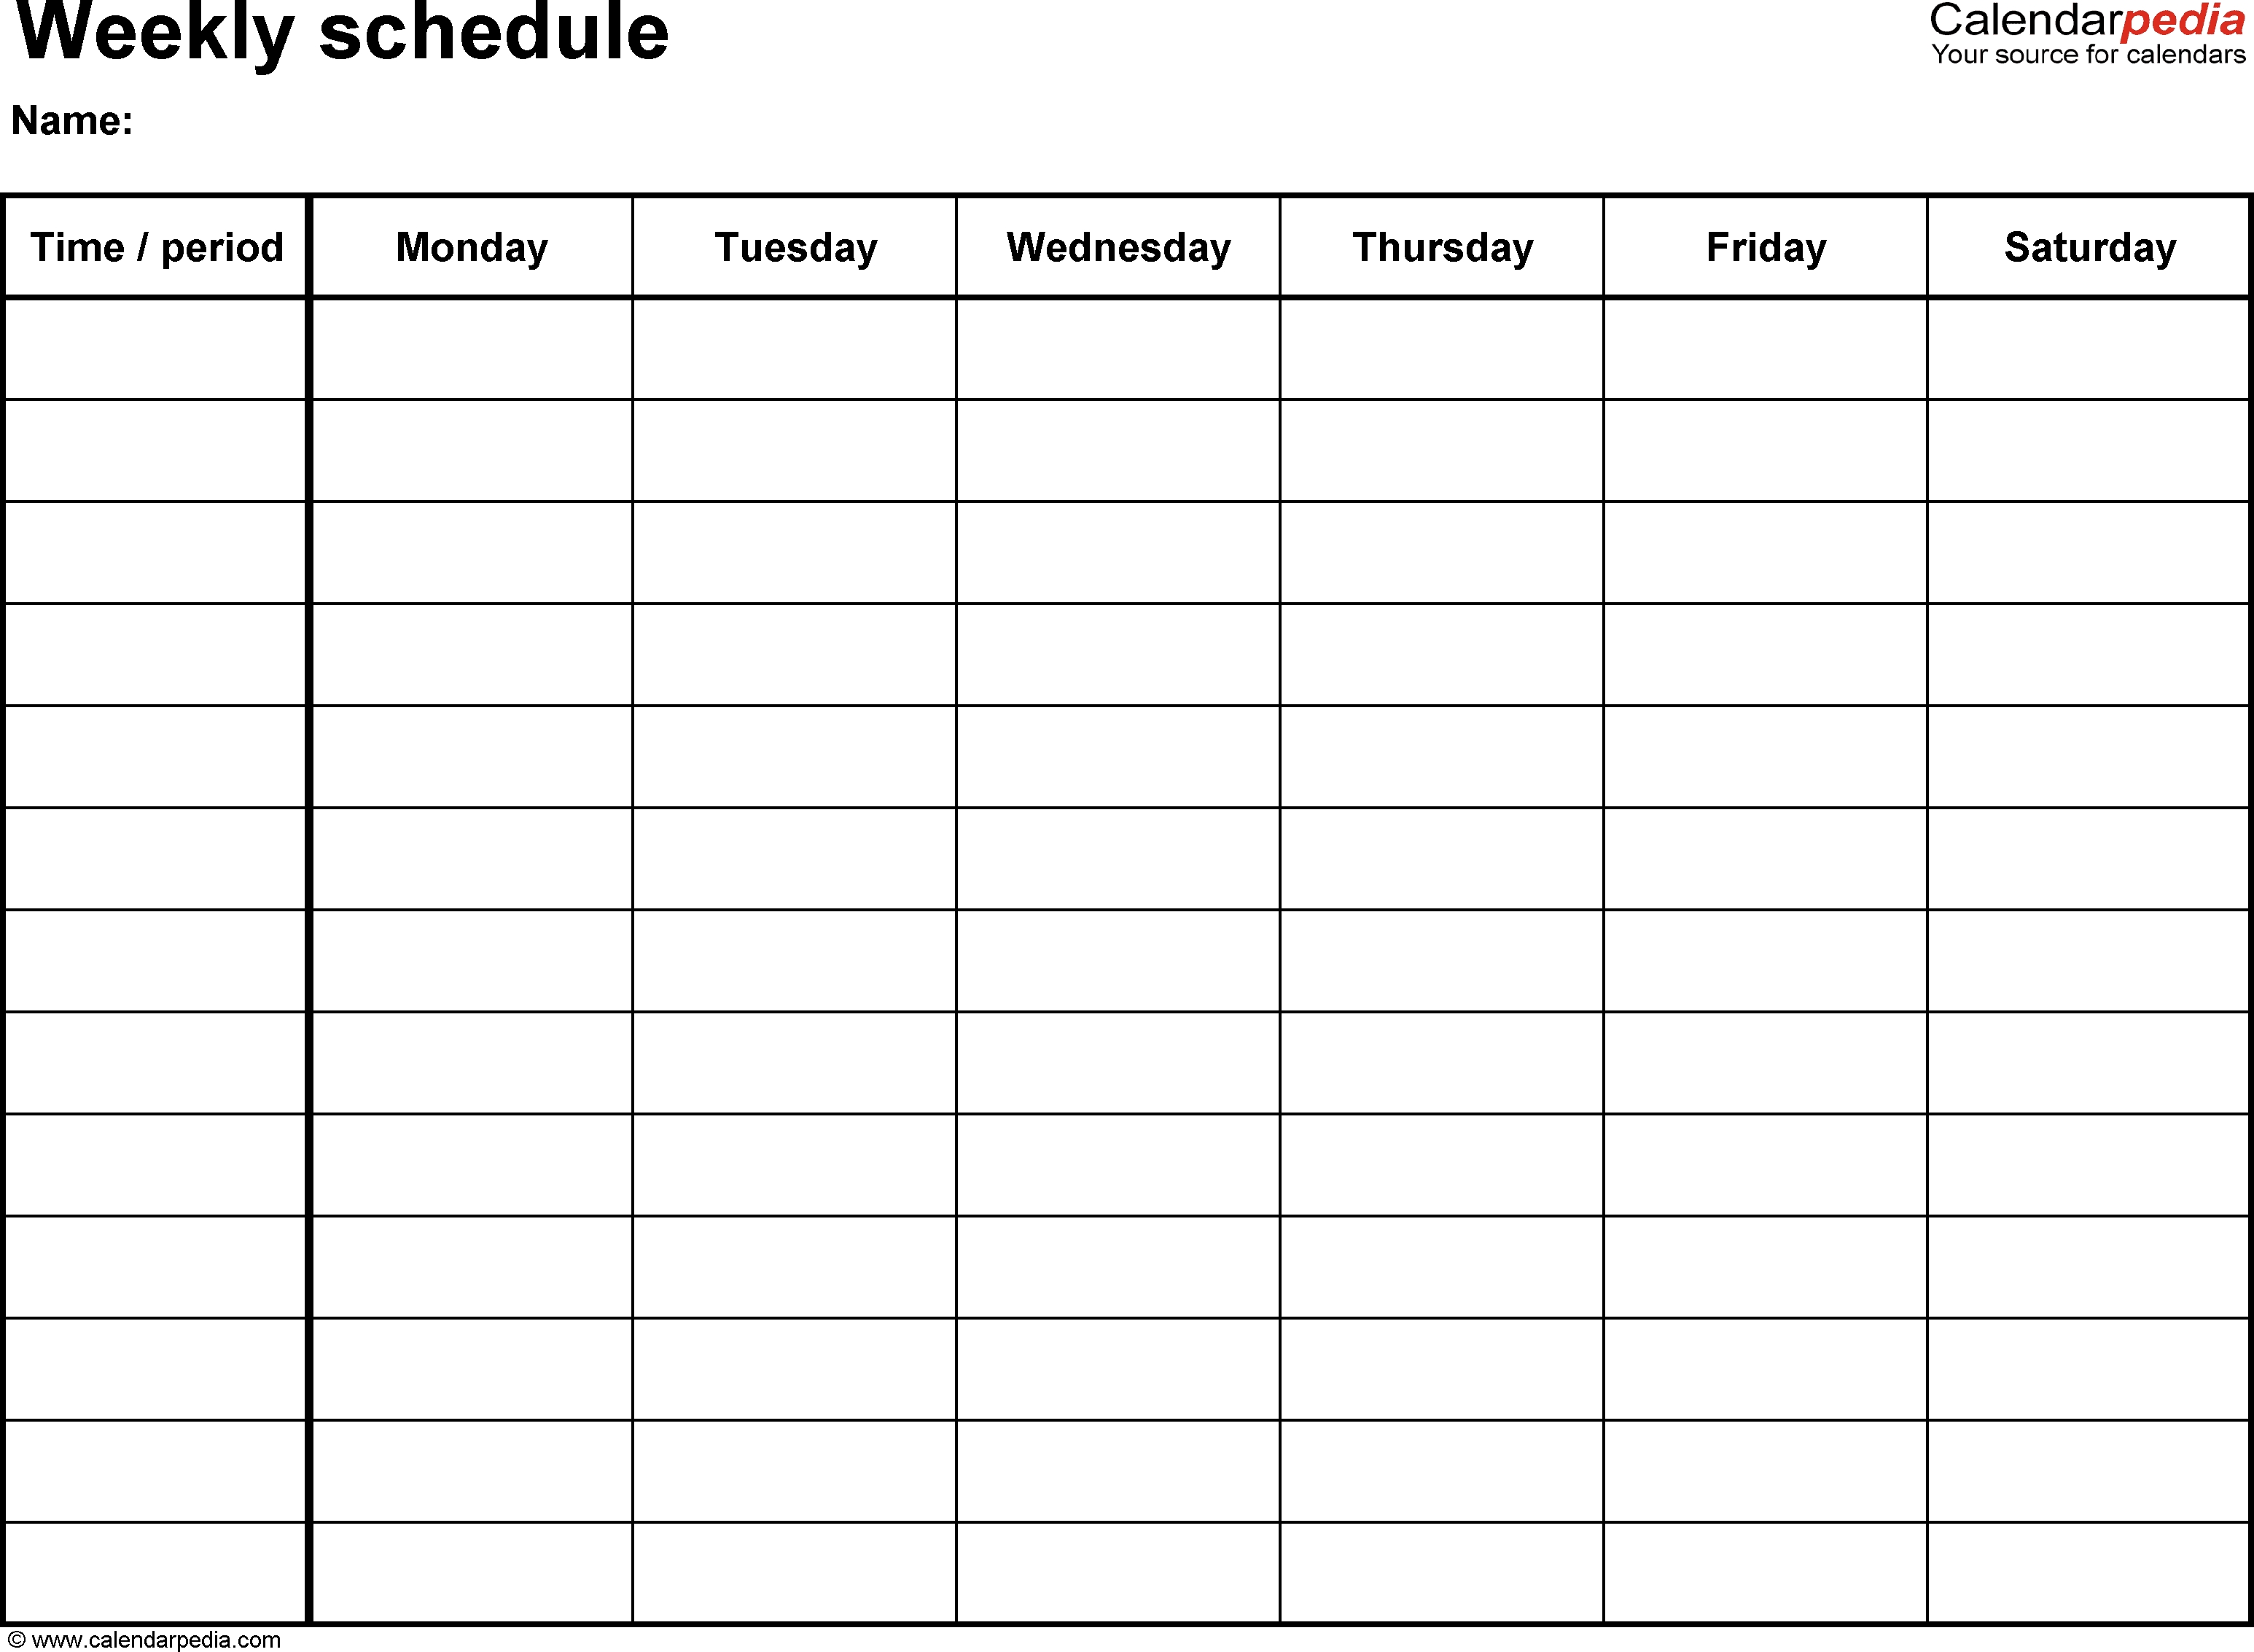 Free Weekly Schedule Templates For Excel - 18 Templates_Blank Calendar Daily Schedule